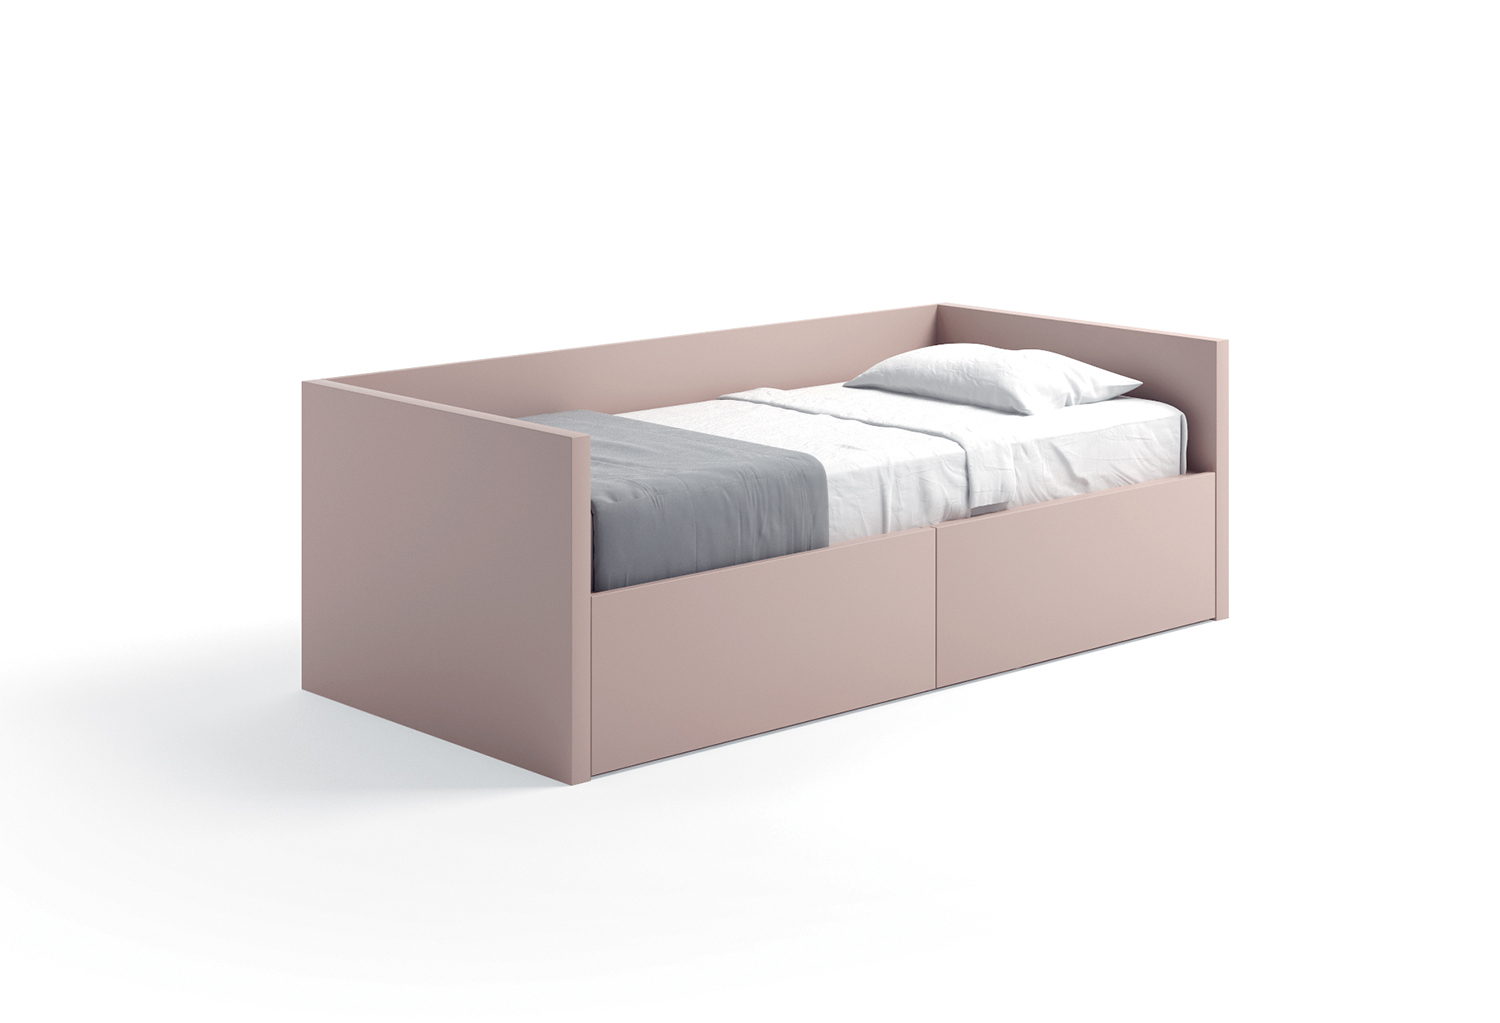 Bed with headboard, footboard and back panel